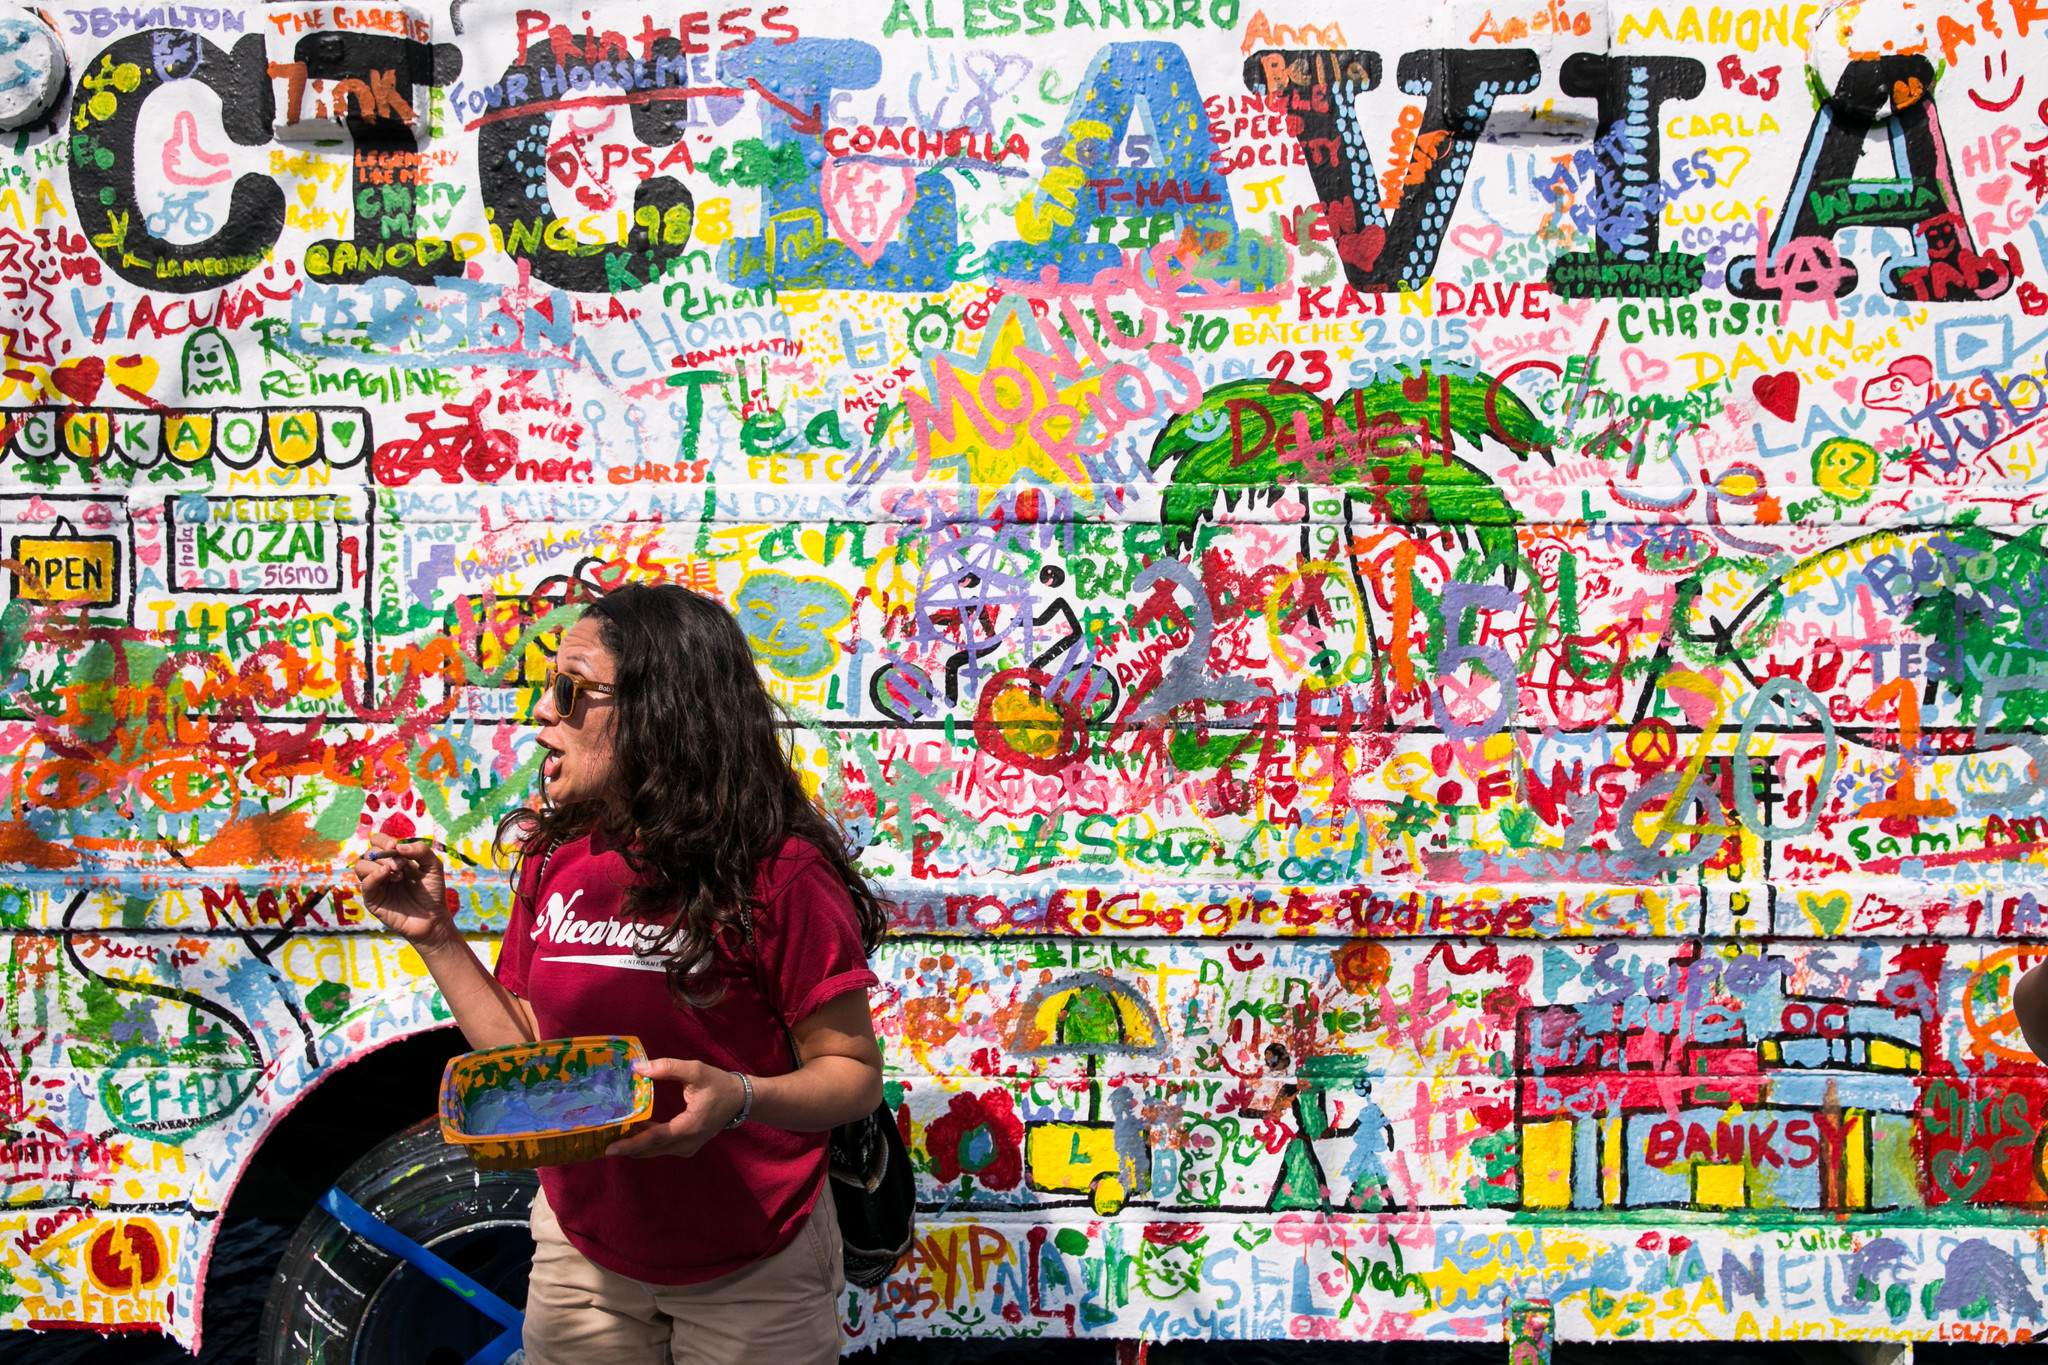 Rest your legs and get creative with the community mural